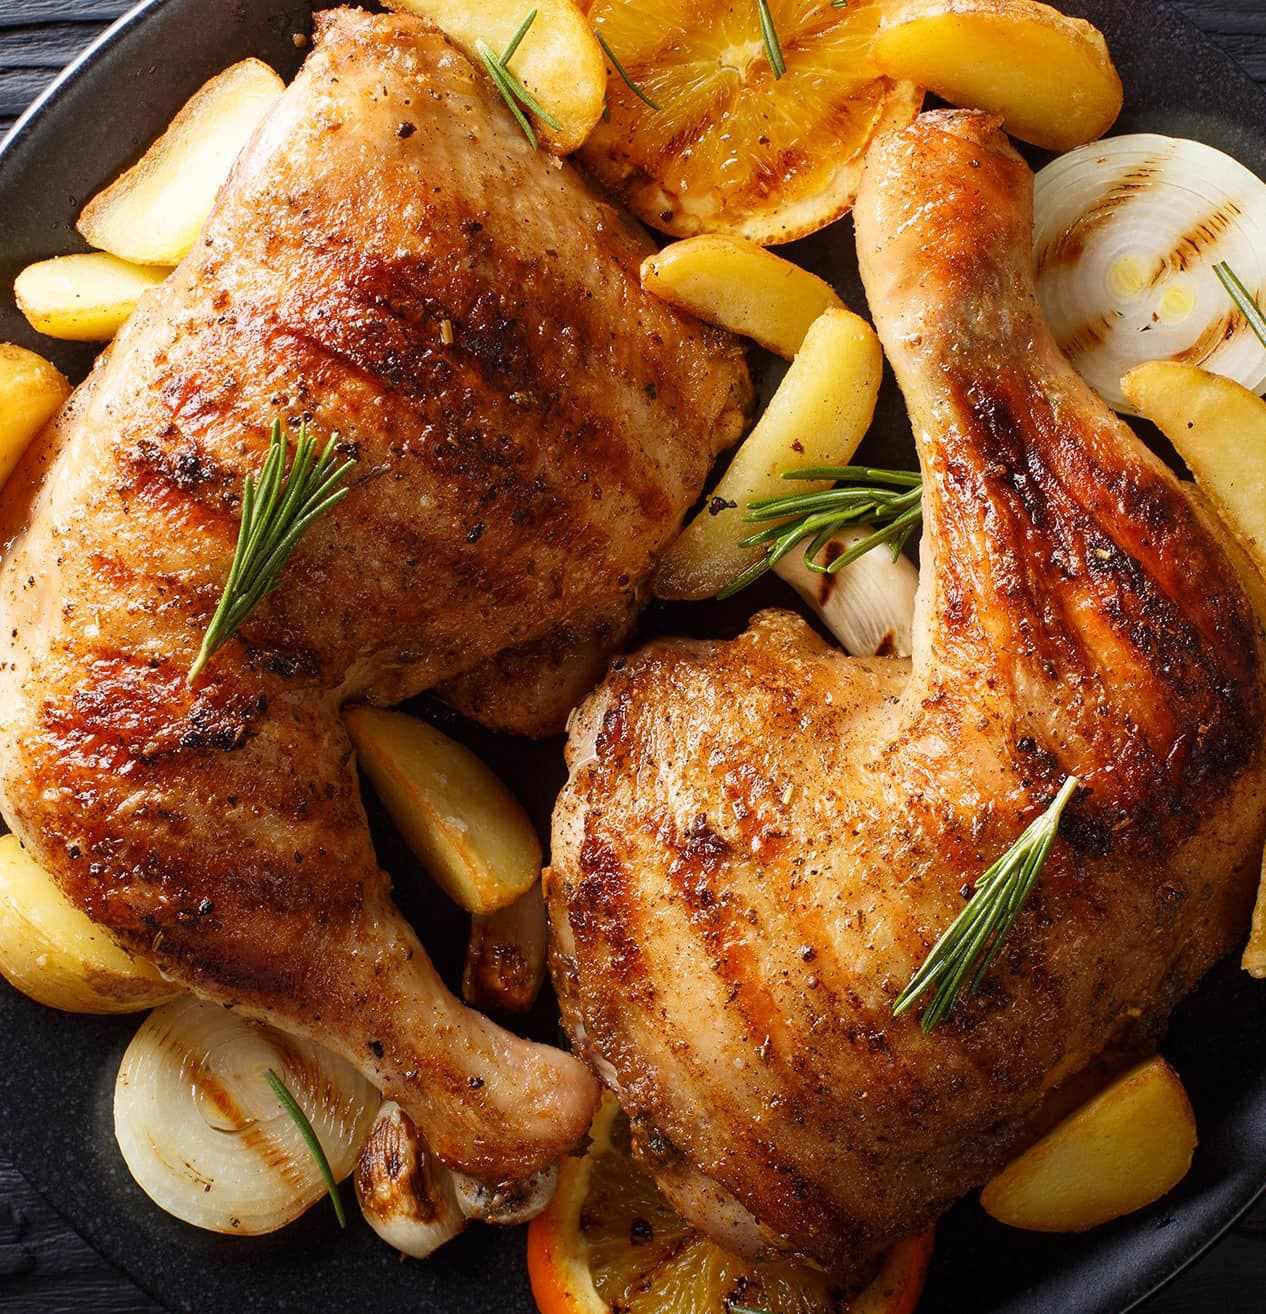 Sheet Pan Dinner With Chicken Thighs And Potatoes: Sheet Pan Chicken Thighs With Gold Potatoes, Asparagus